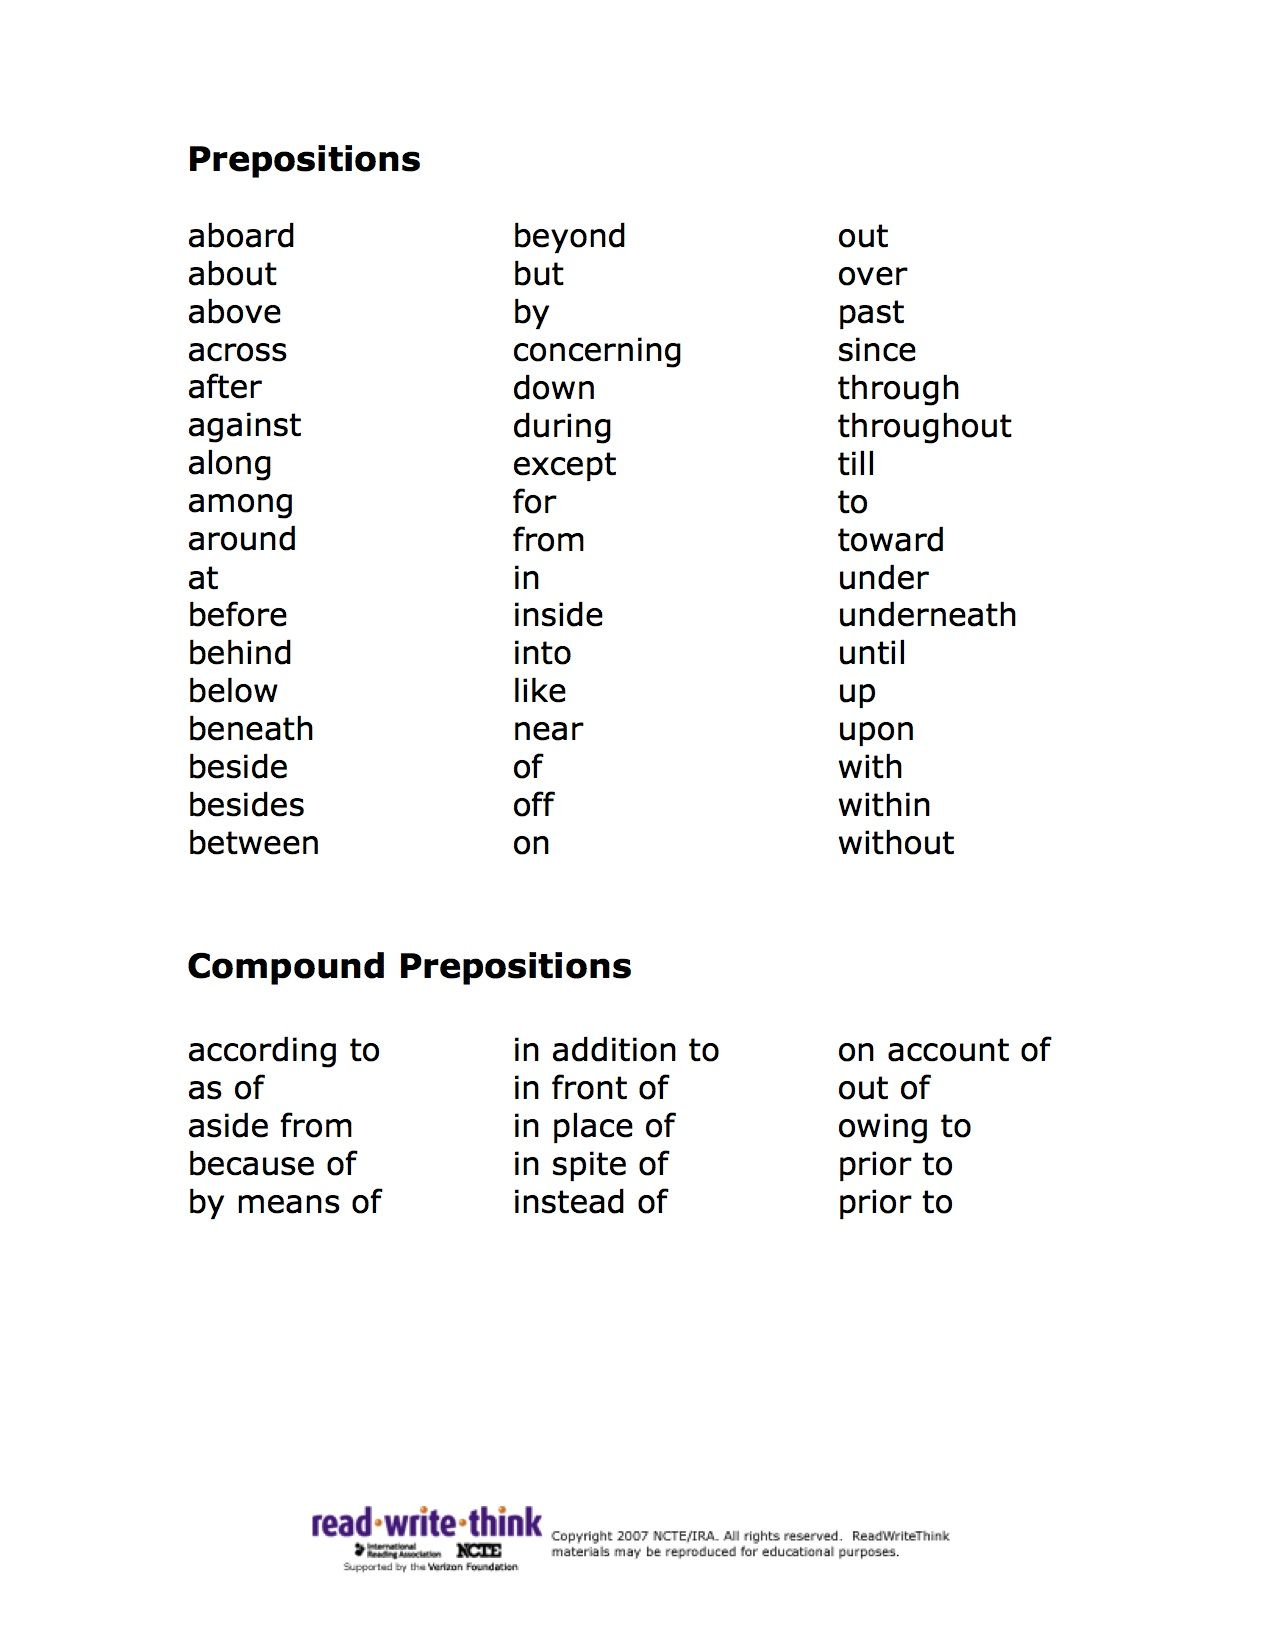 A Basic List Of Prepositions Esl Students Need To Learn